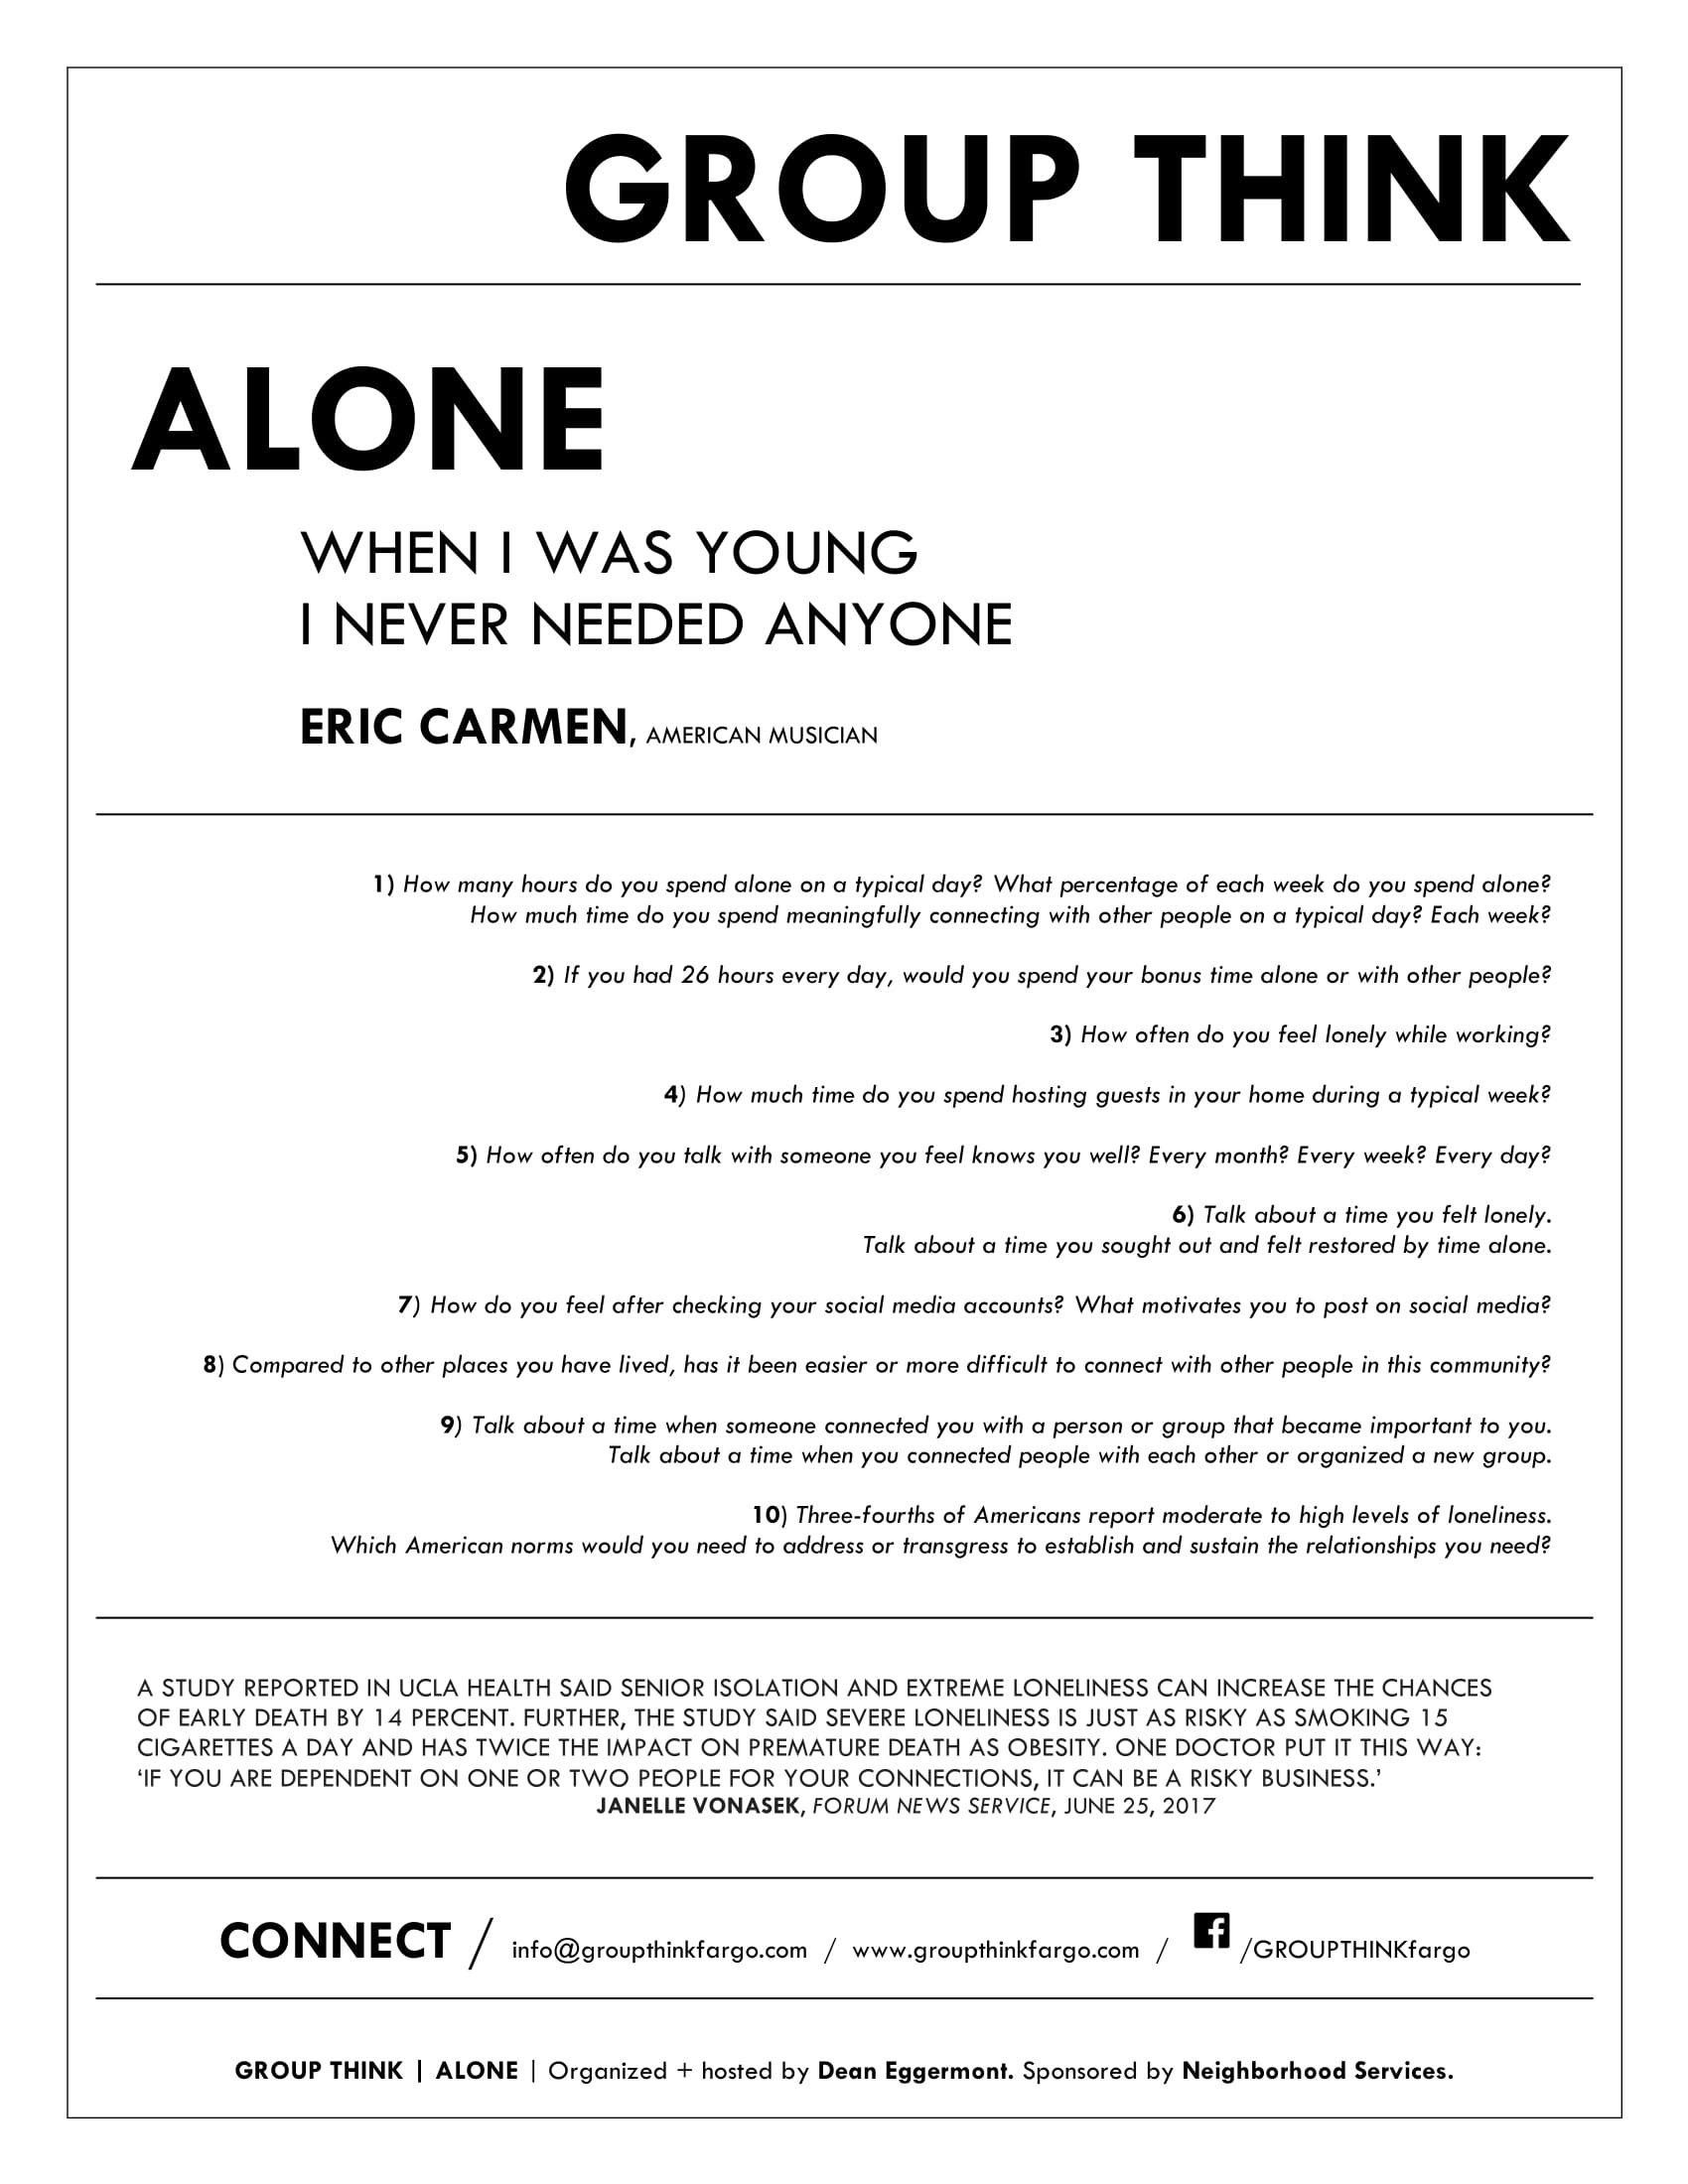 GROUP THINK - 03.2019 - ALONE handout-1.jpg